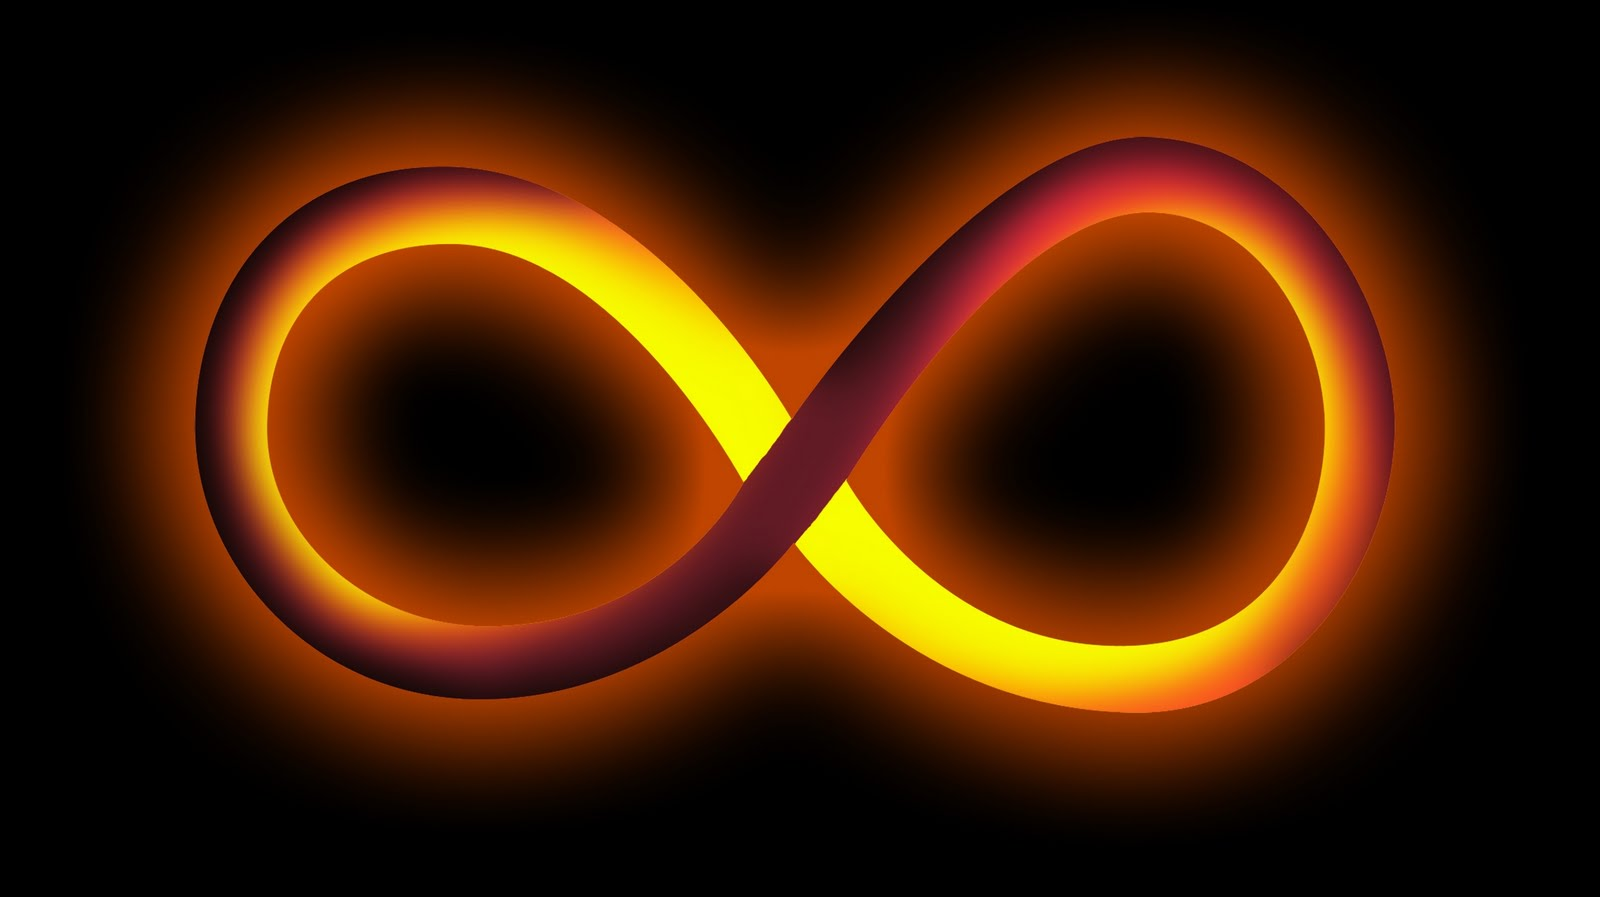 Infinity Symbol Free Images At Clker Vector Clip Art Online